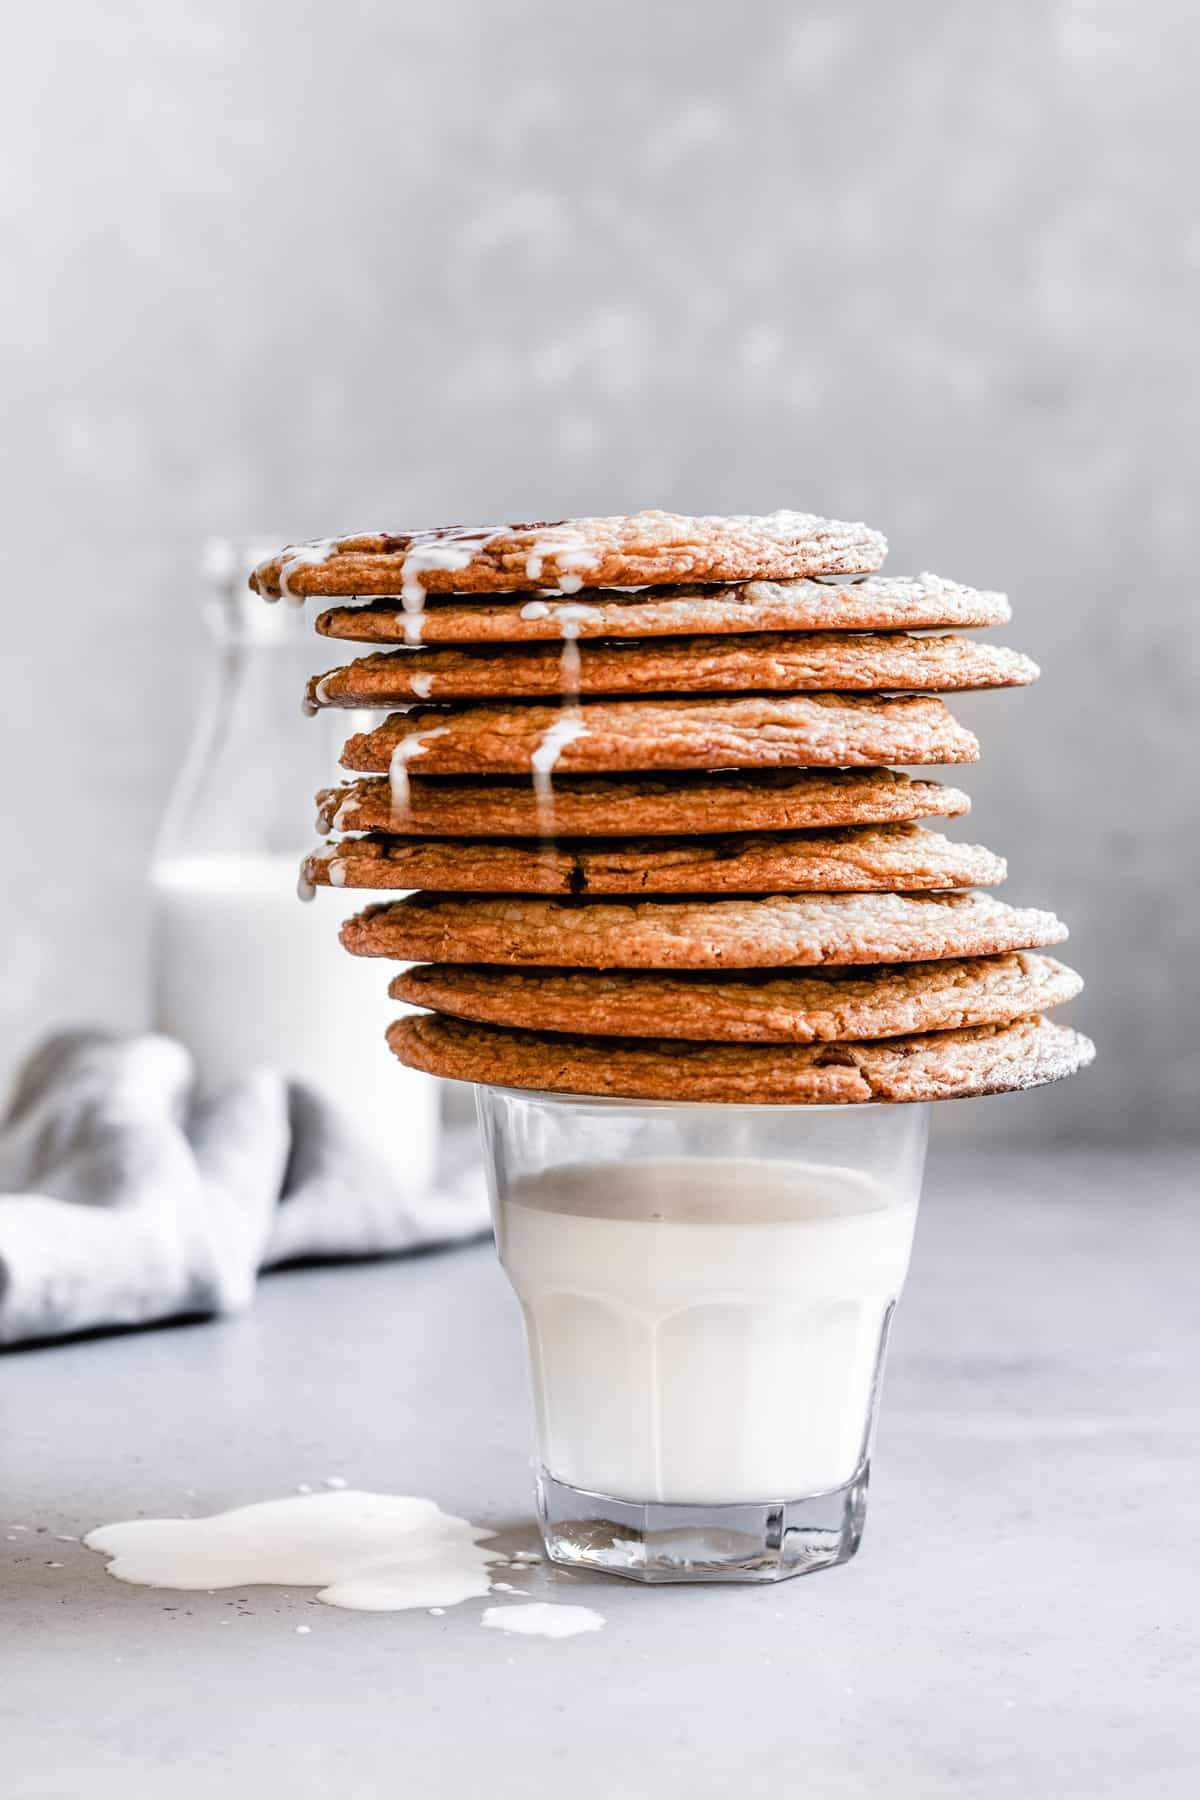 Giant chocolate chip cookie recipe using the pan bang method.